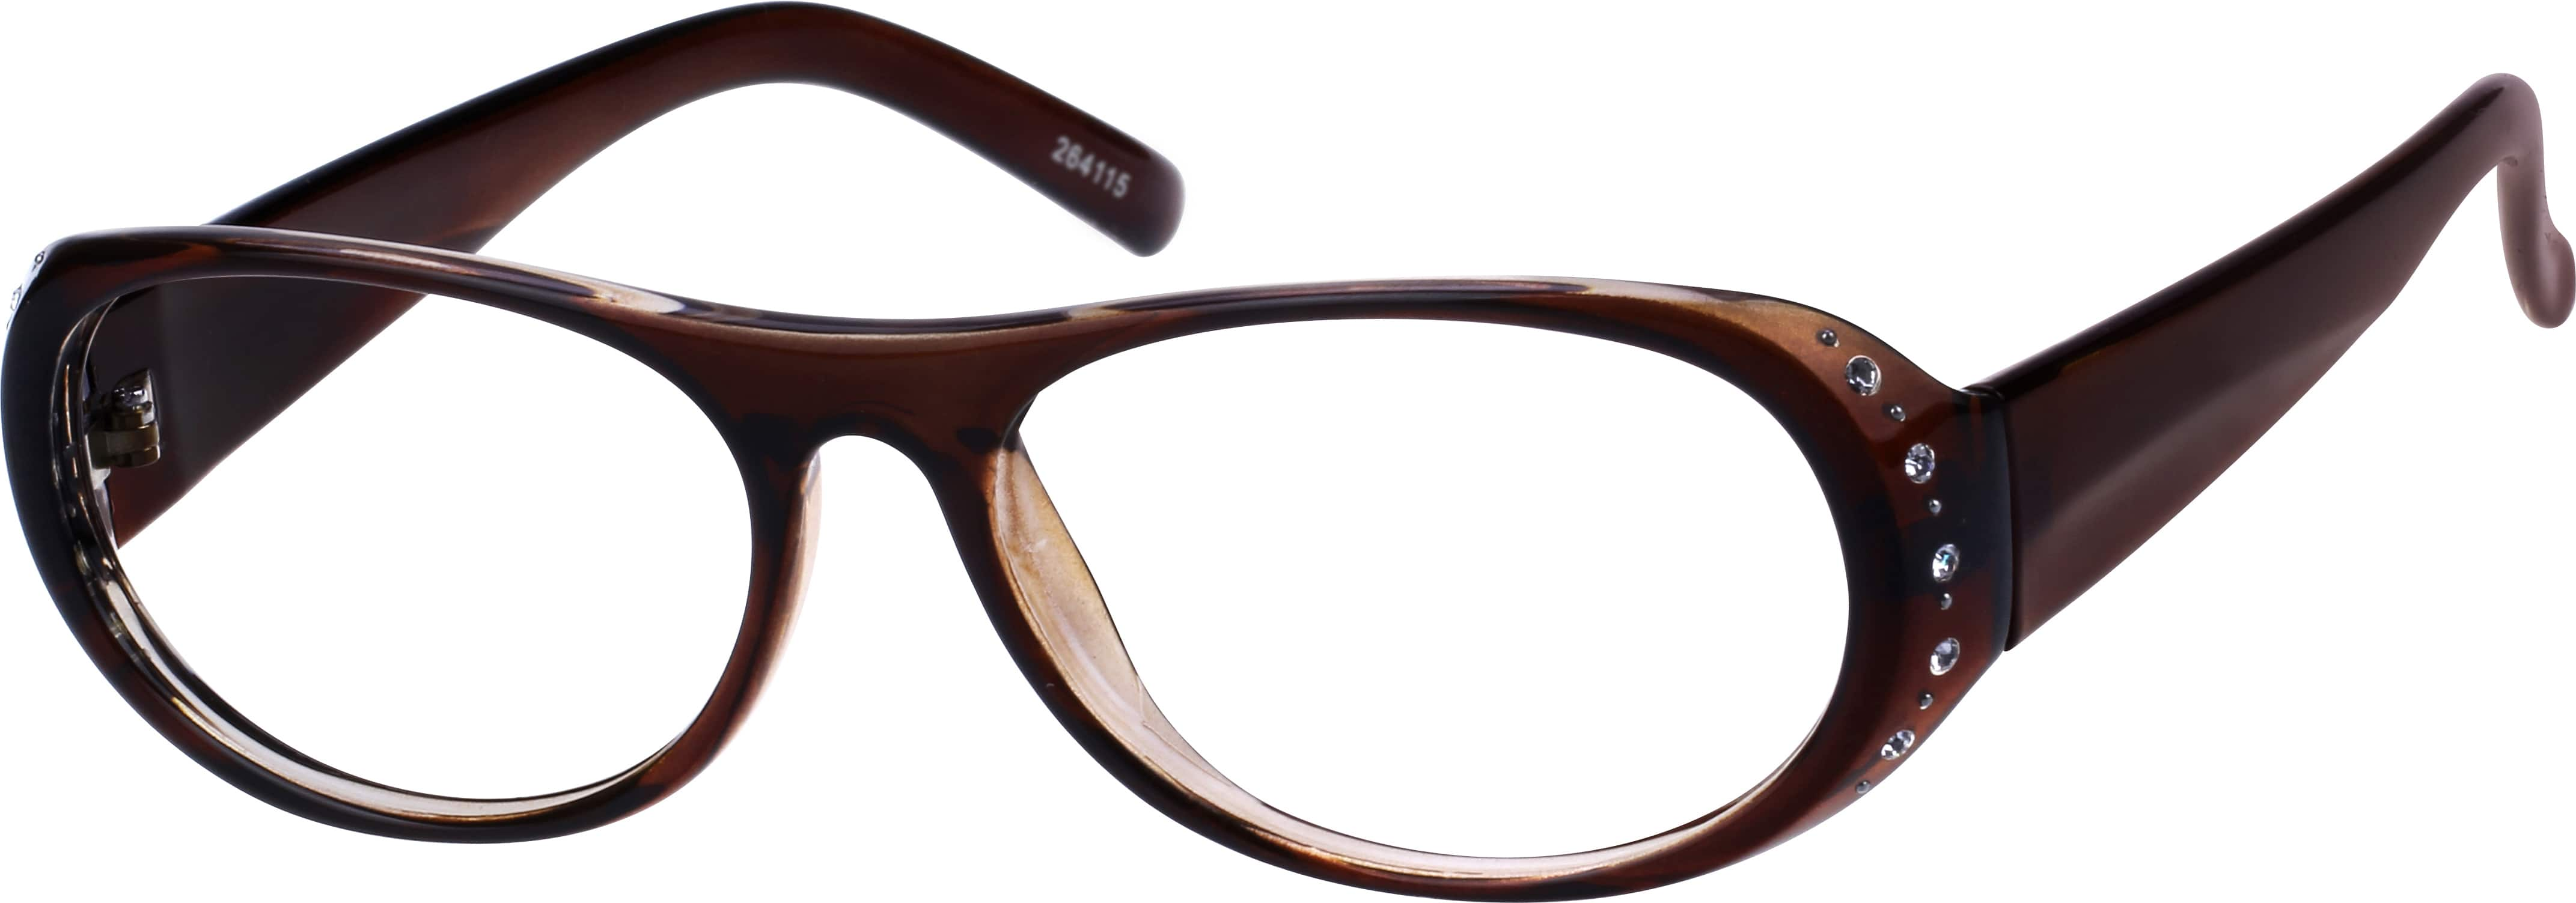 264115-fashion-stylish-plastic-full-rim-frame